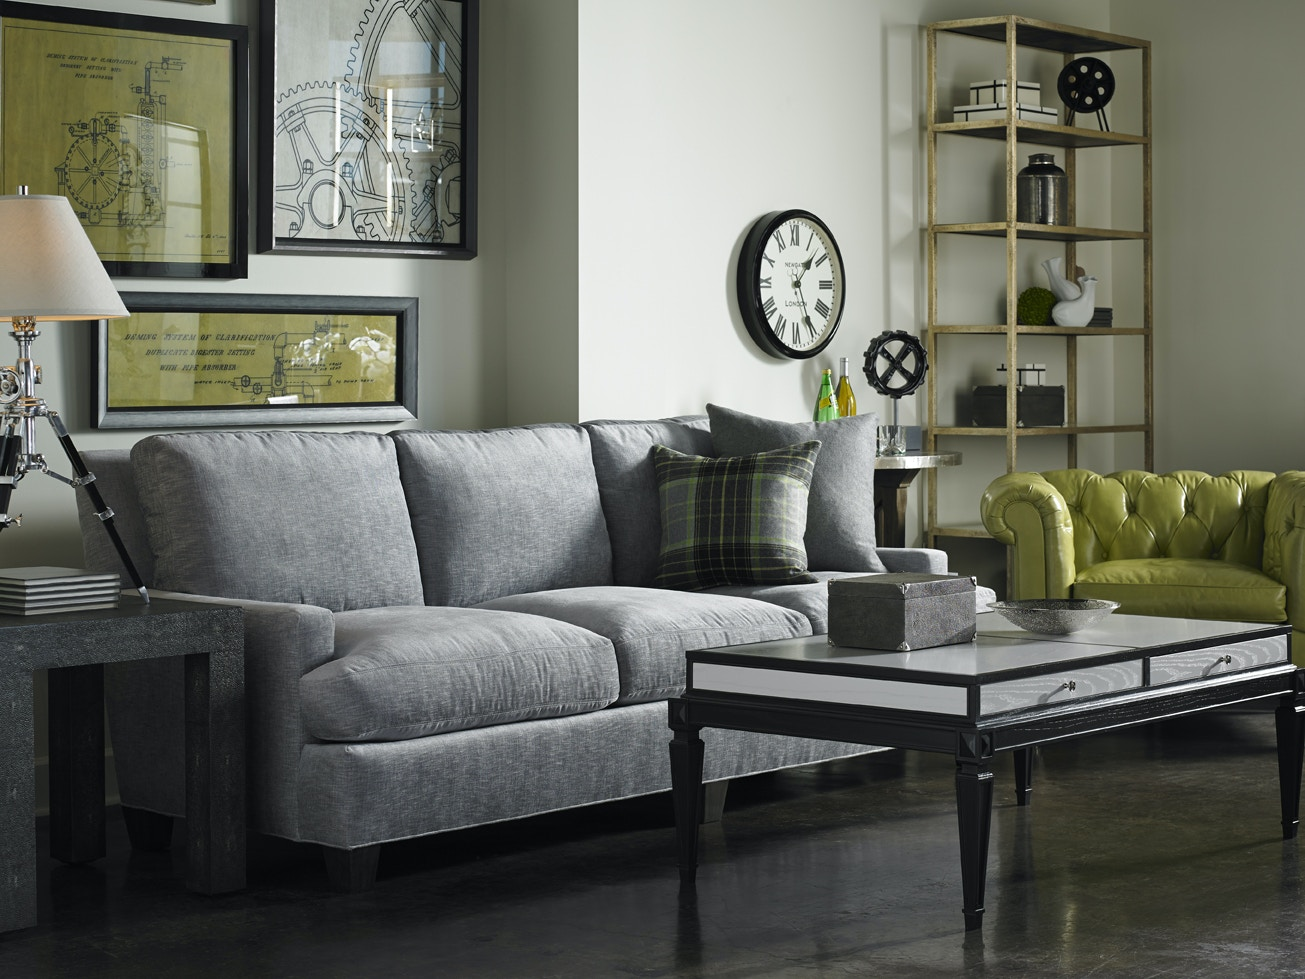 Charmant Lillian August Furniture Smithfield Sofa LA9102S